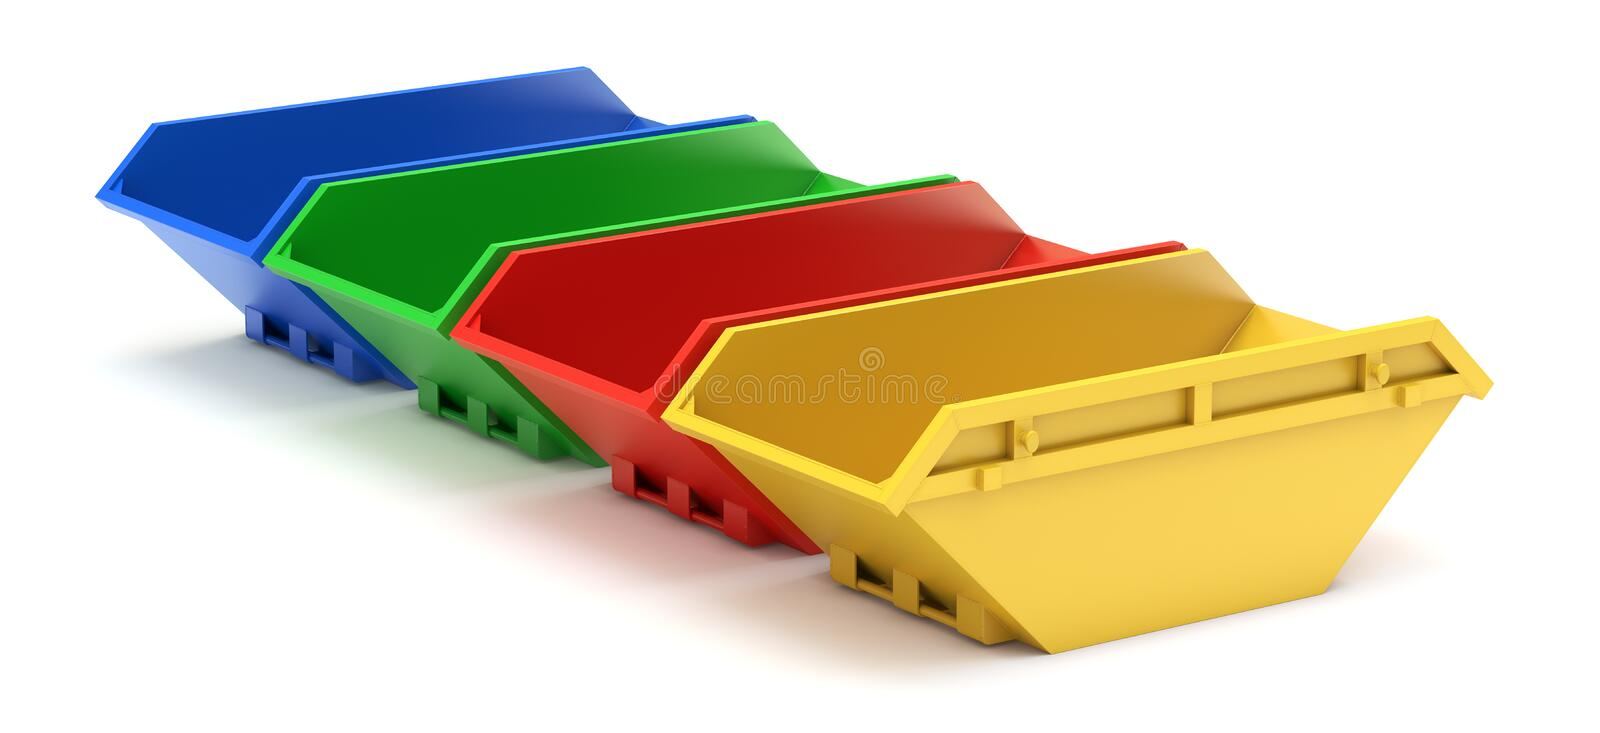 Yellow, red, green and blue waste skip stock illustration